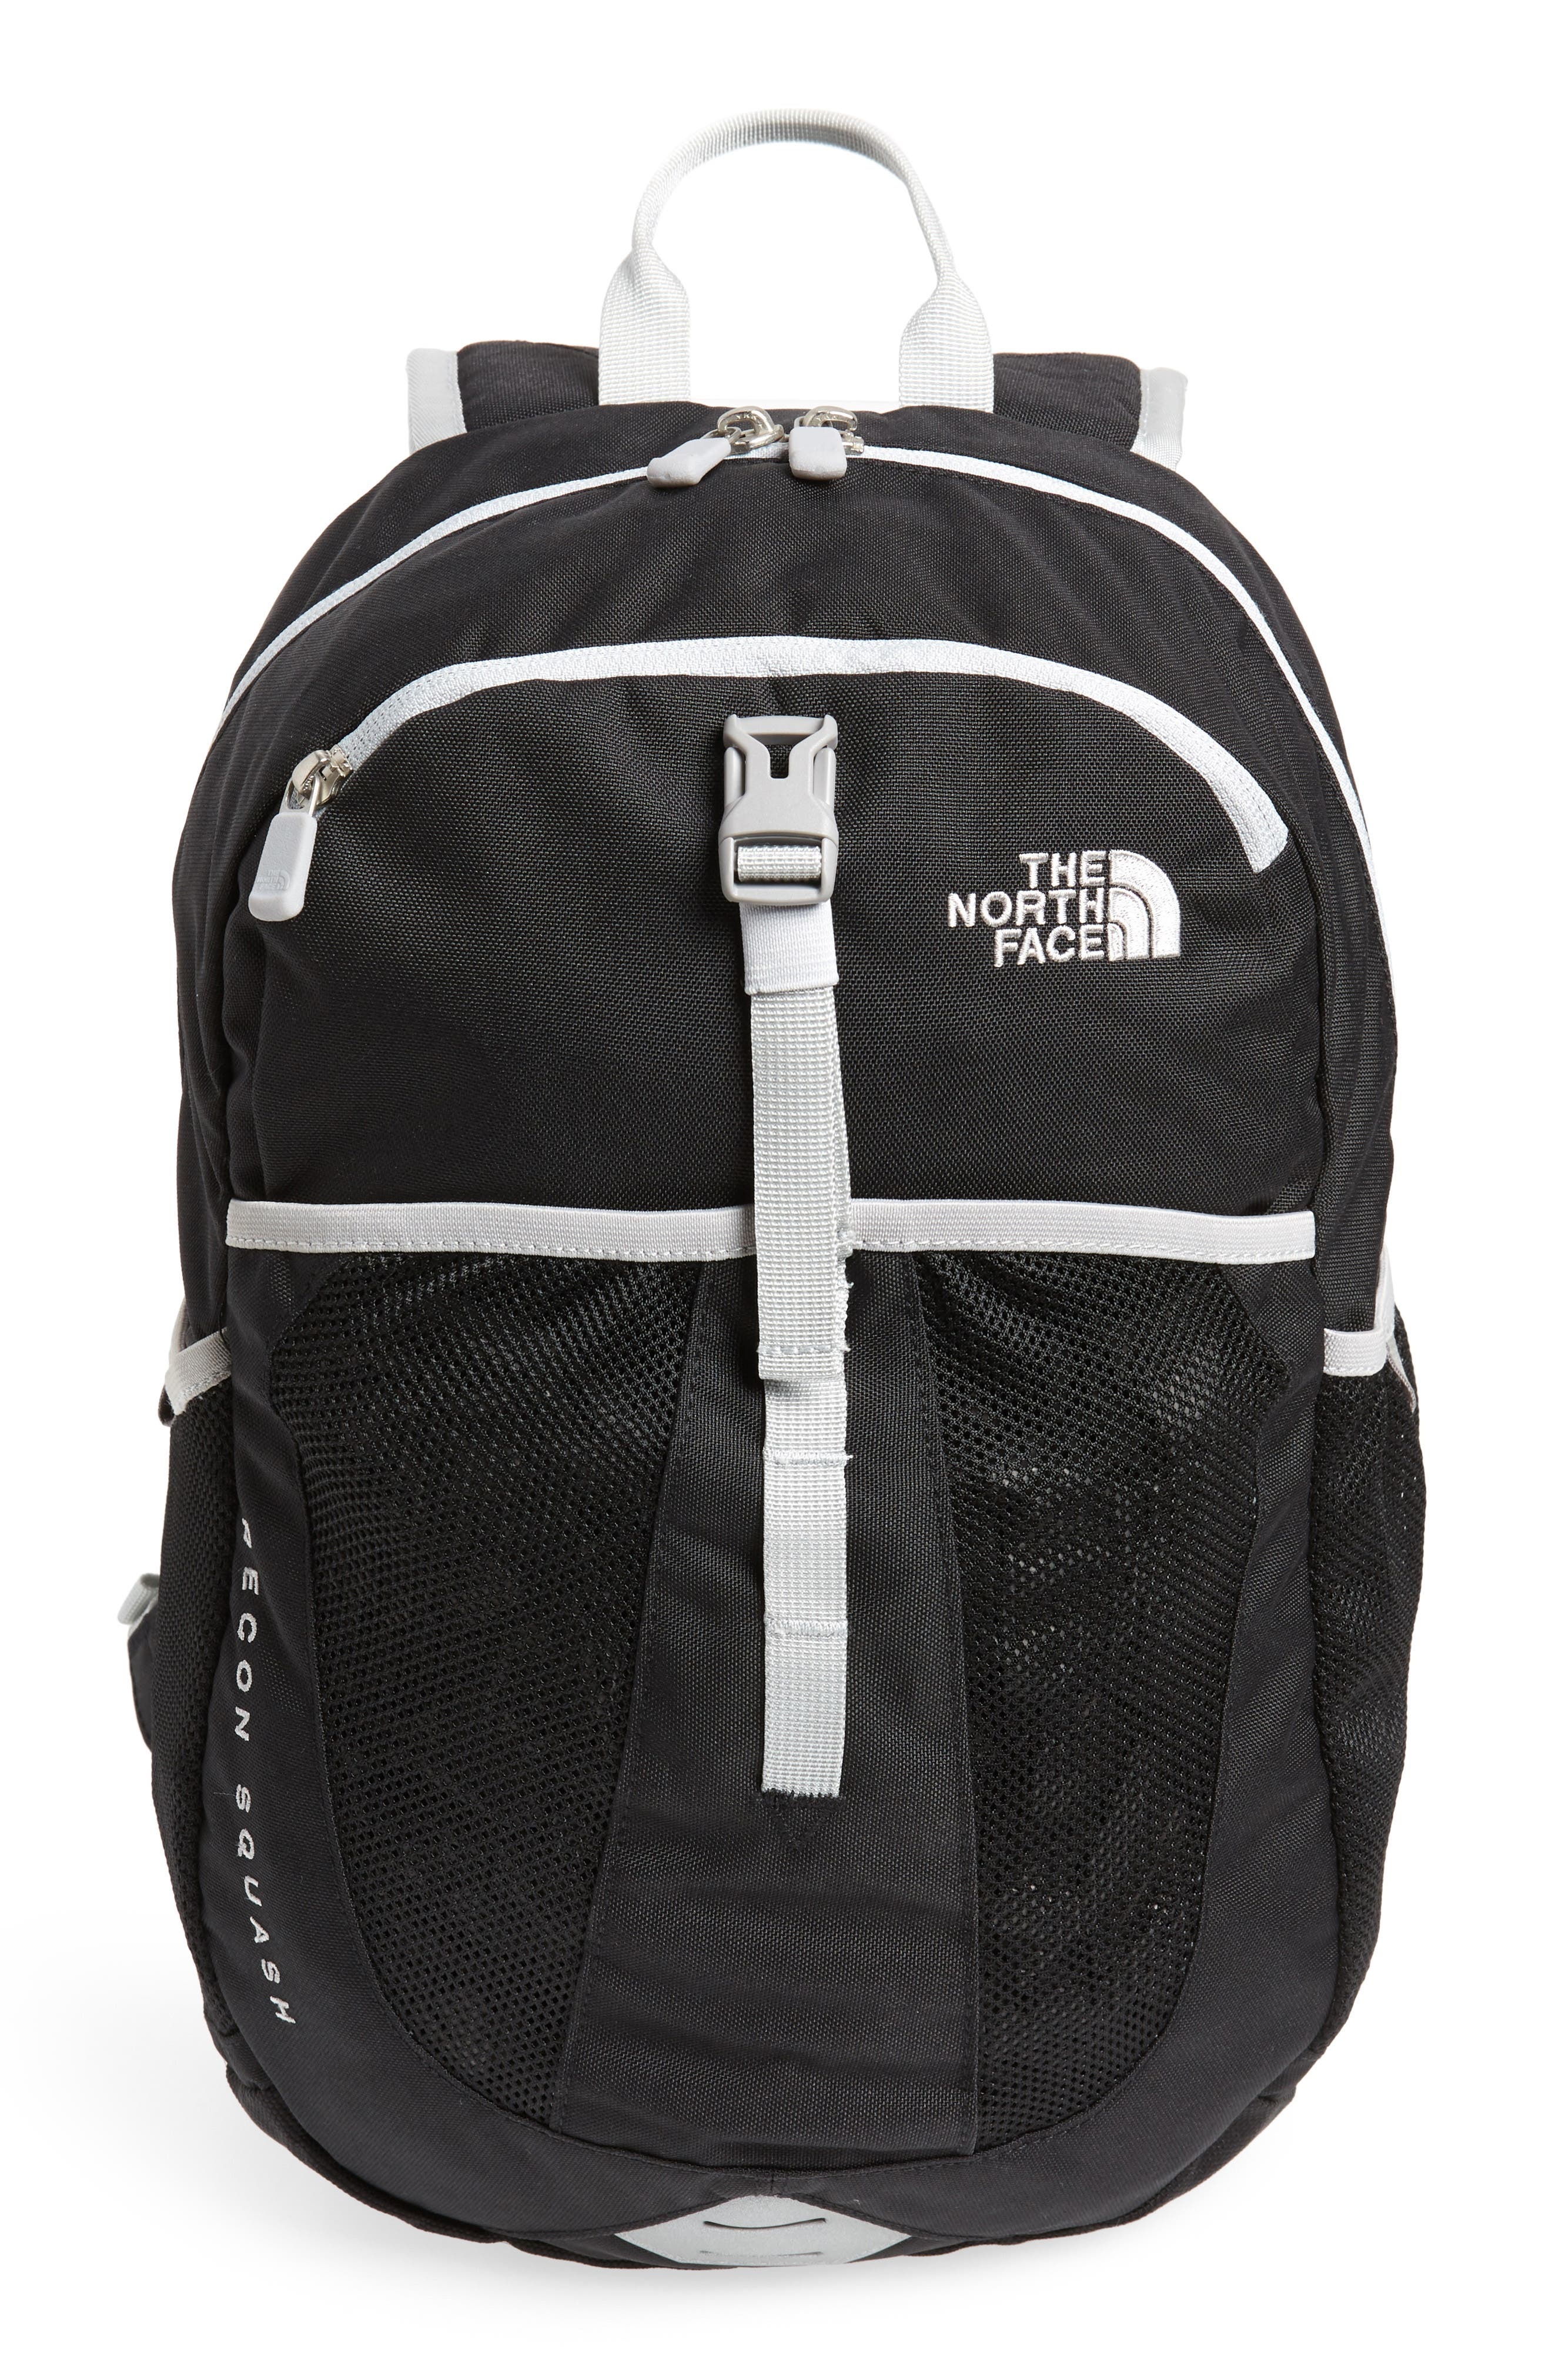 Recon Squash Backpack,                             Main thumbnail 1, color,                             001